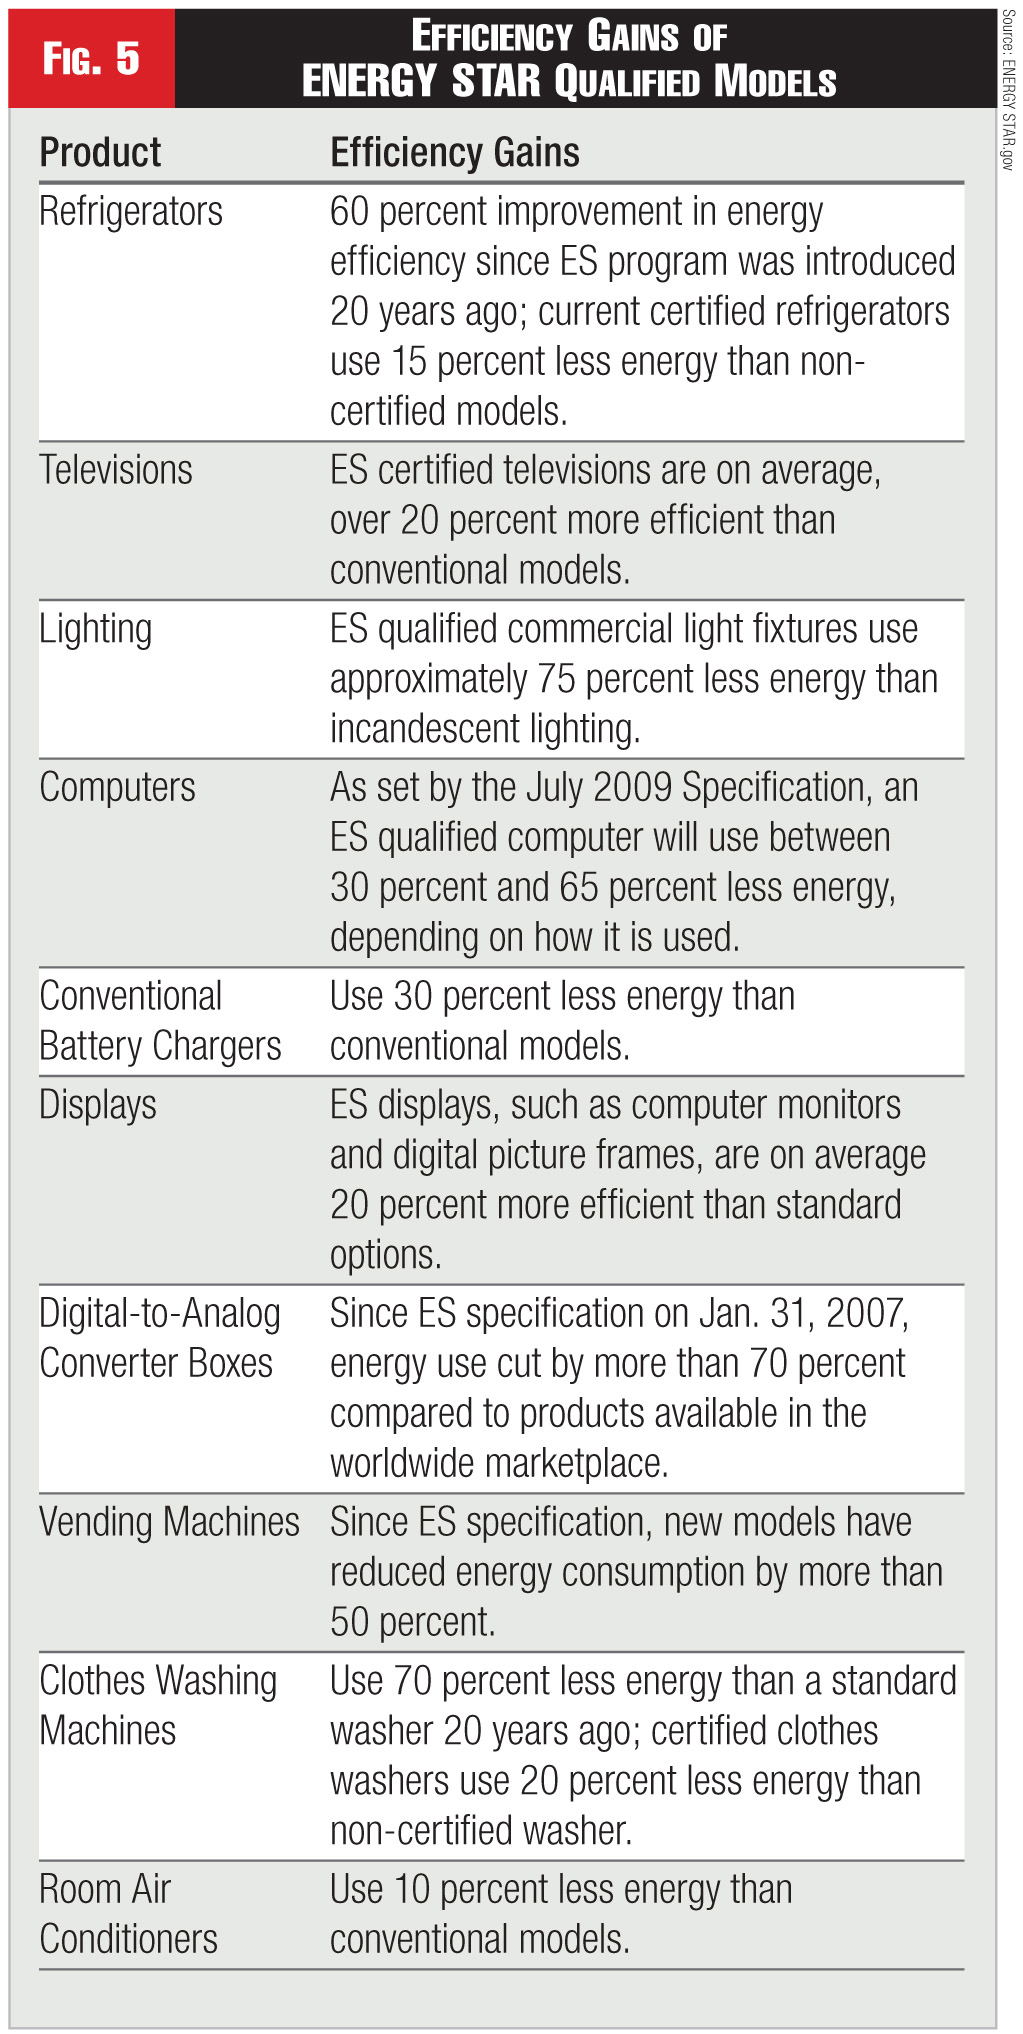 Figure 5 - Efficiency Gains of ENERGY STAR Qualified Models